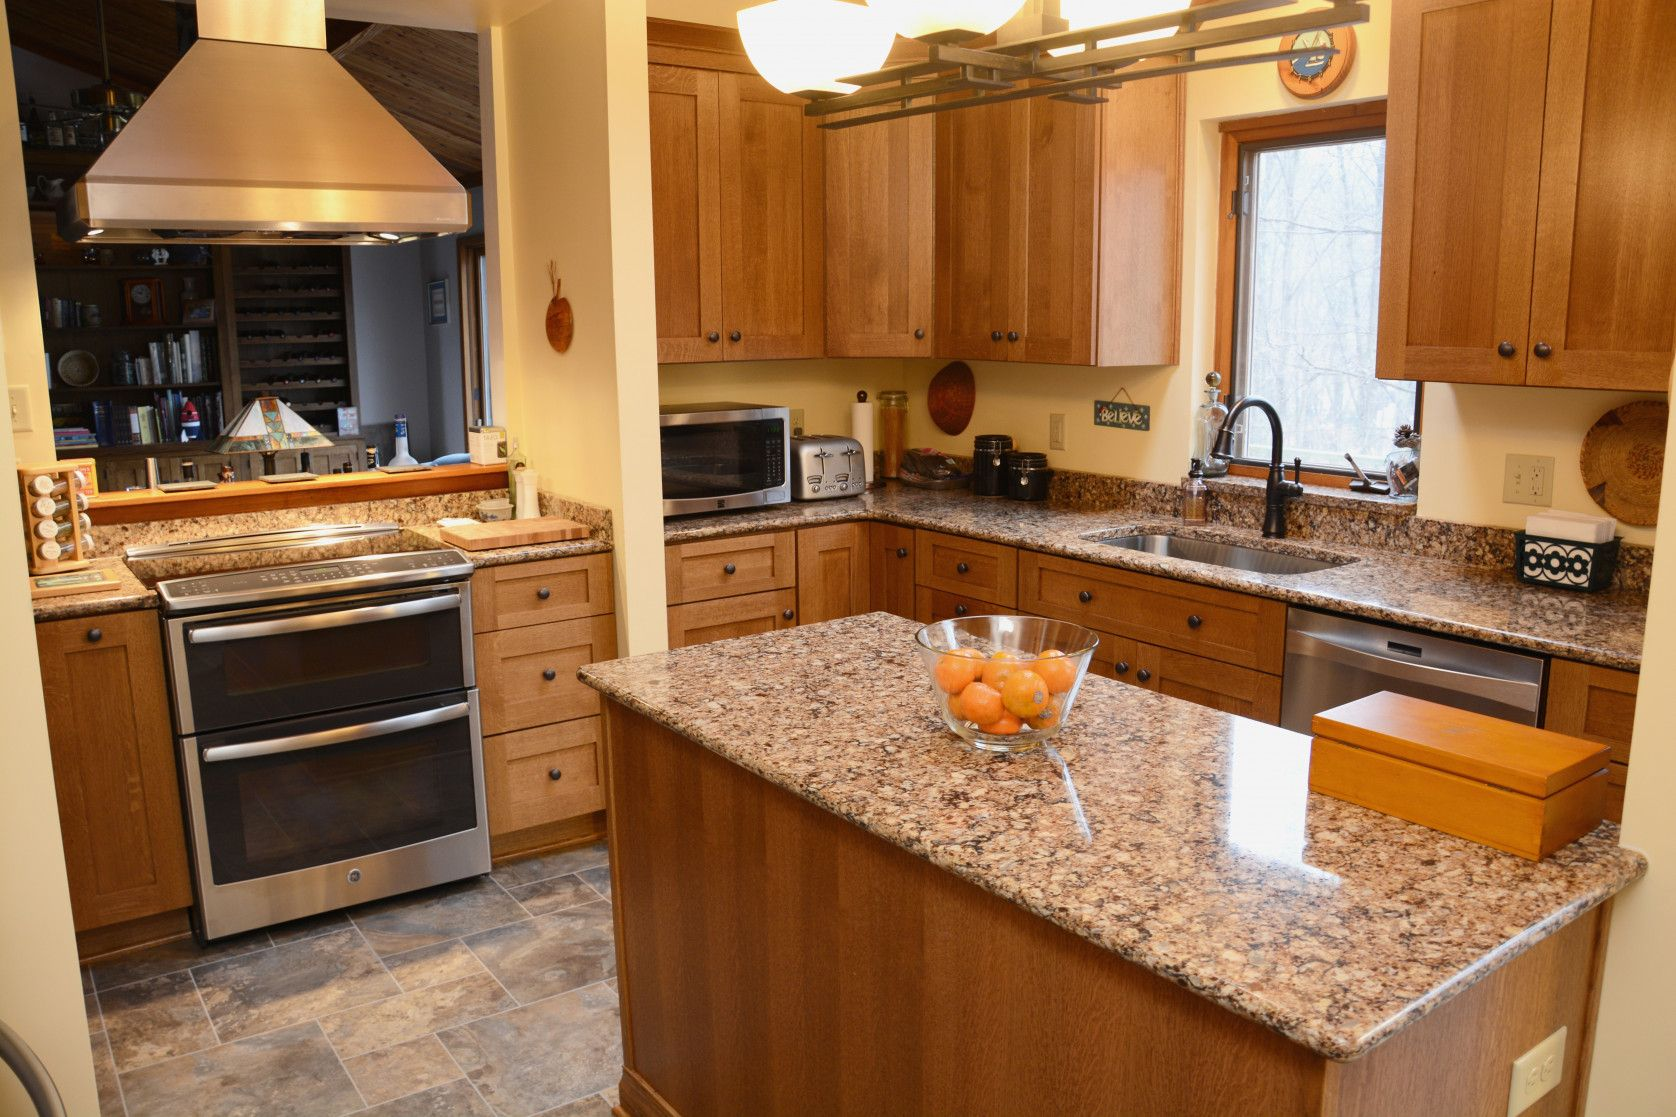 kitchen island discount how to decorate counter space 2019 cabinet outlet ohio